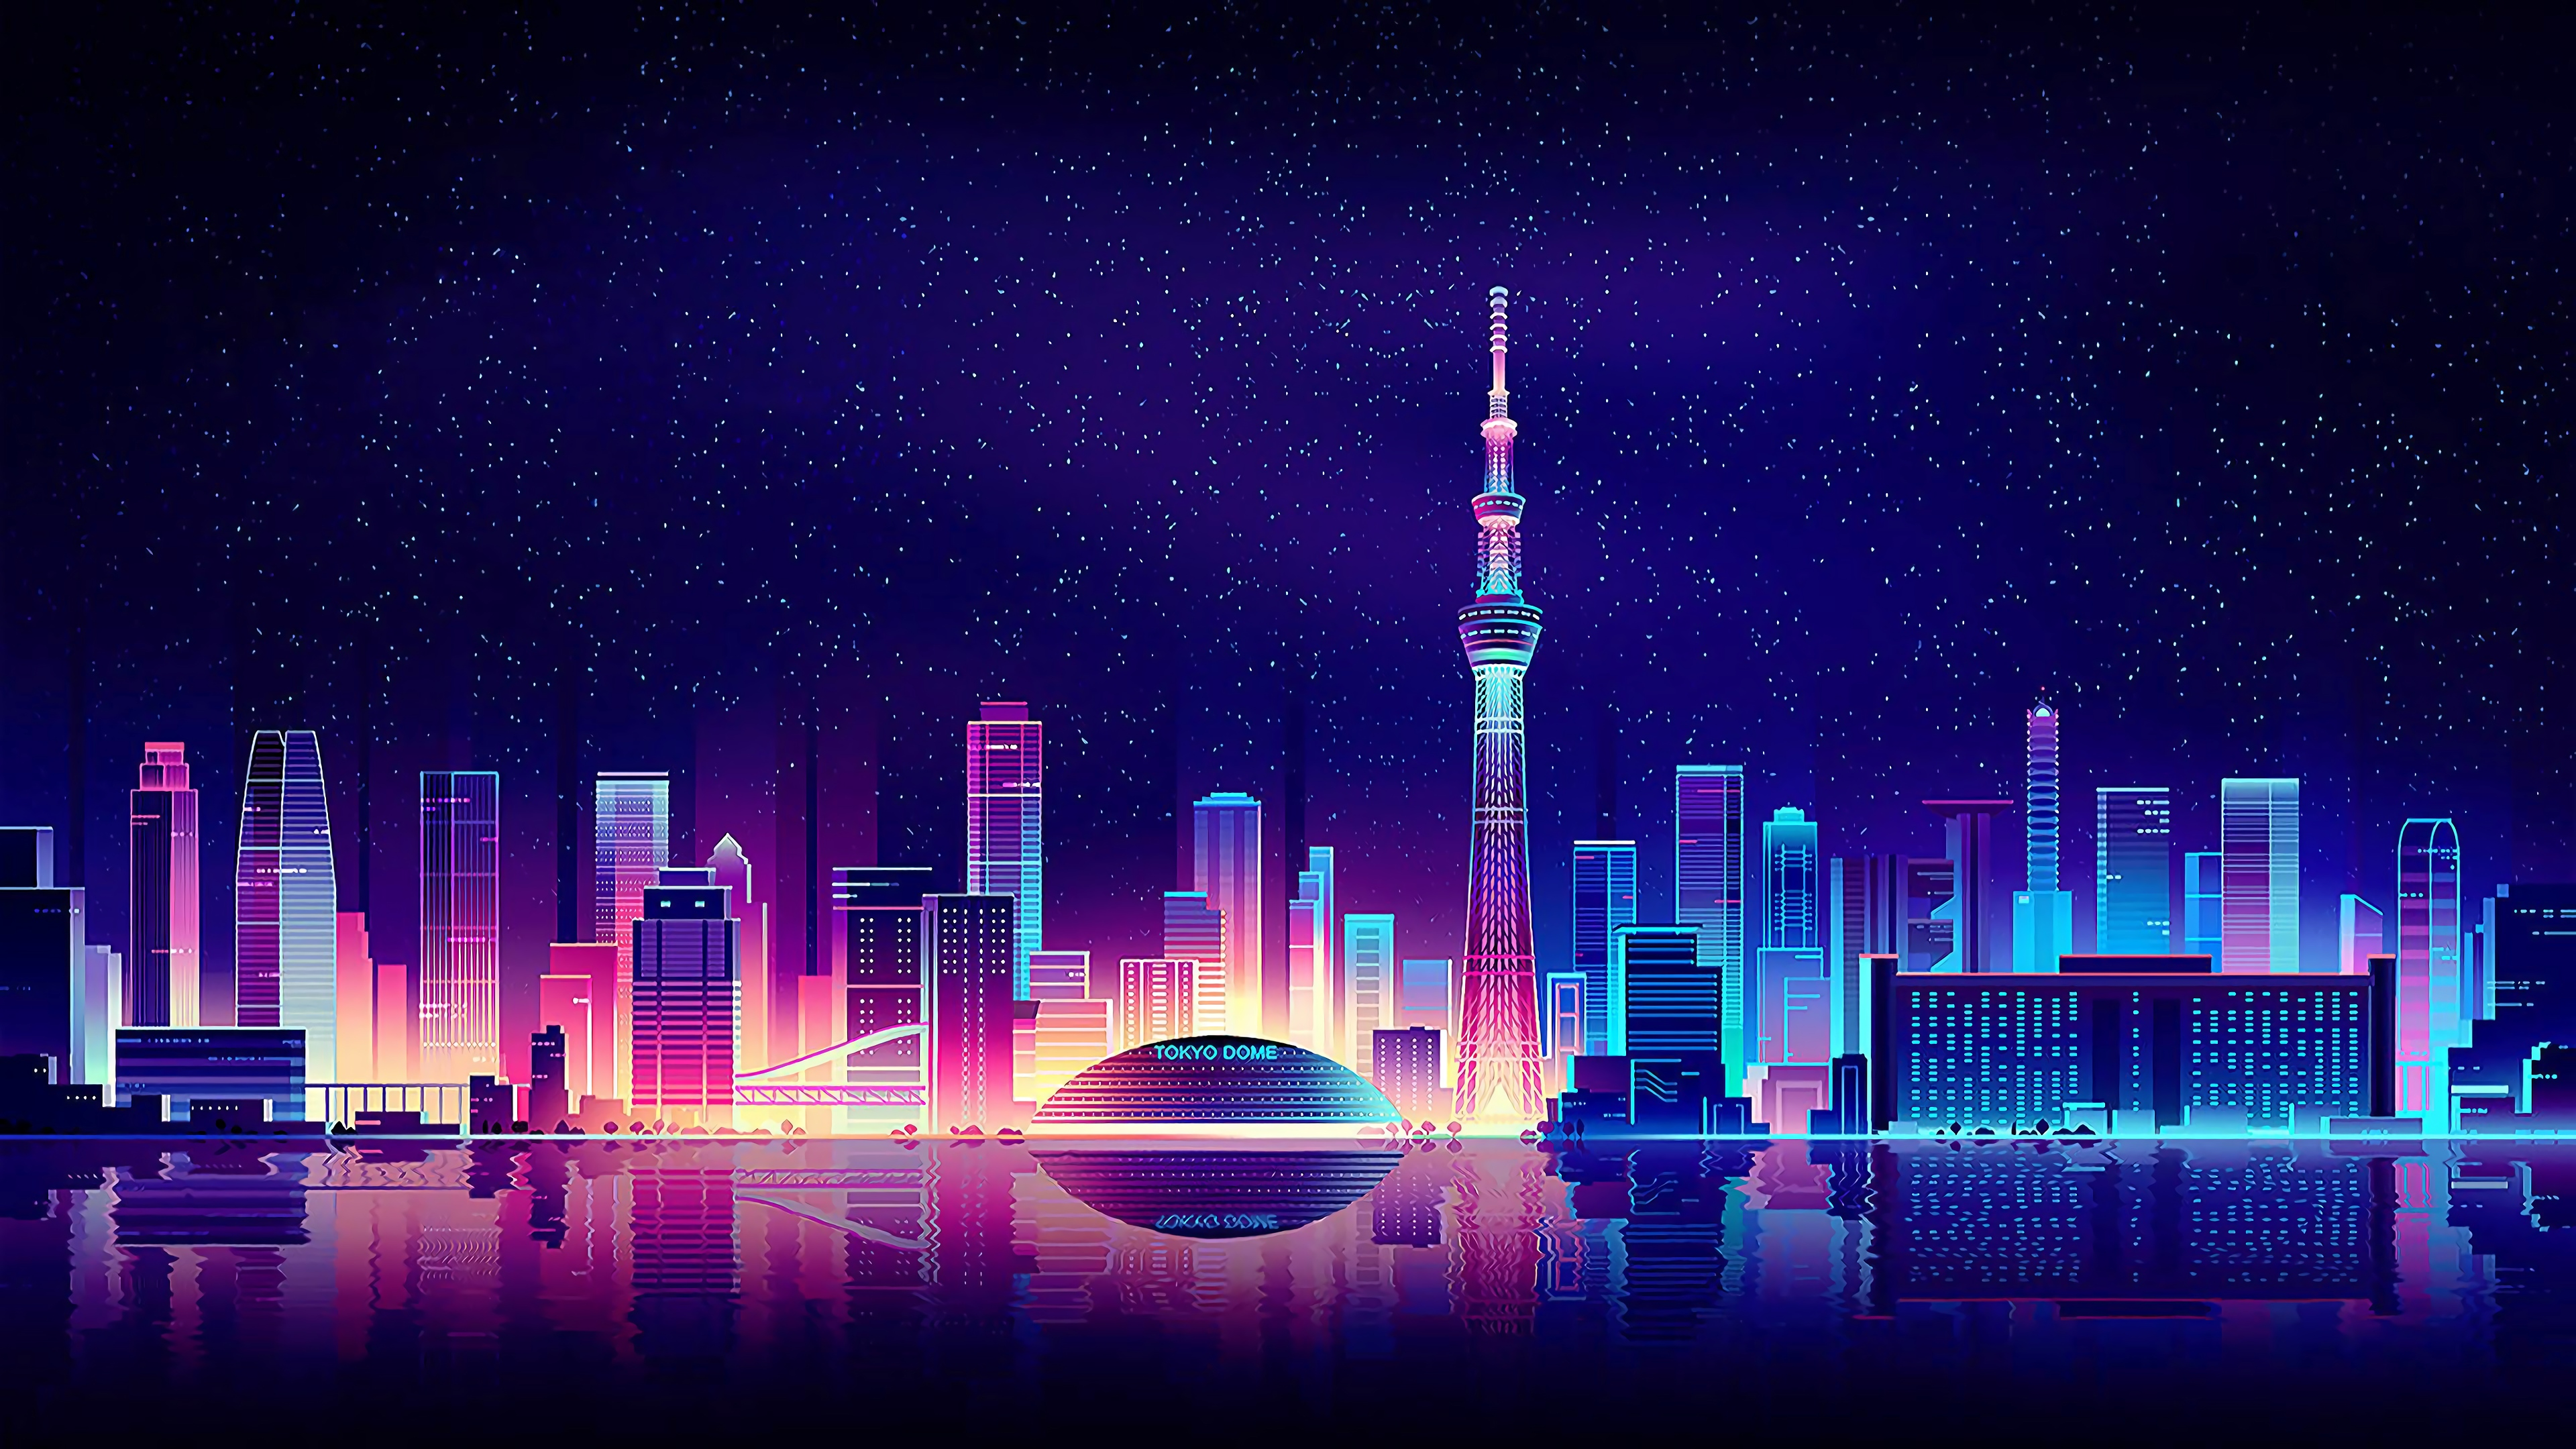 Tokyo 4k Wallpapers For Your Desktop Or Mobile Screen Free And Easy To Download